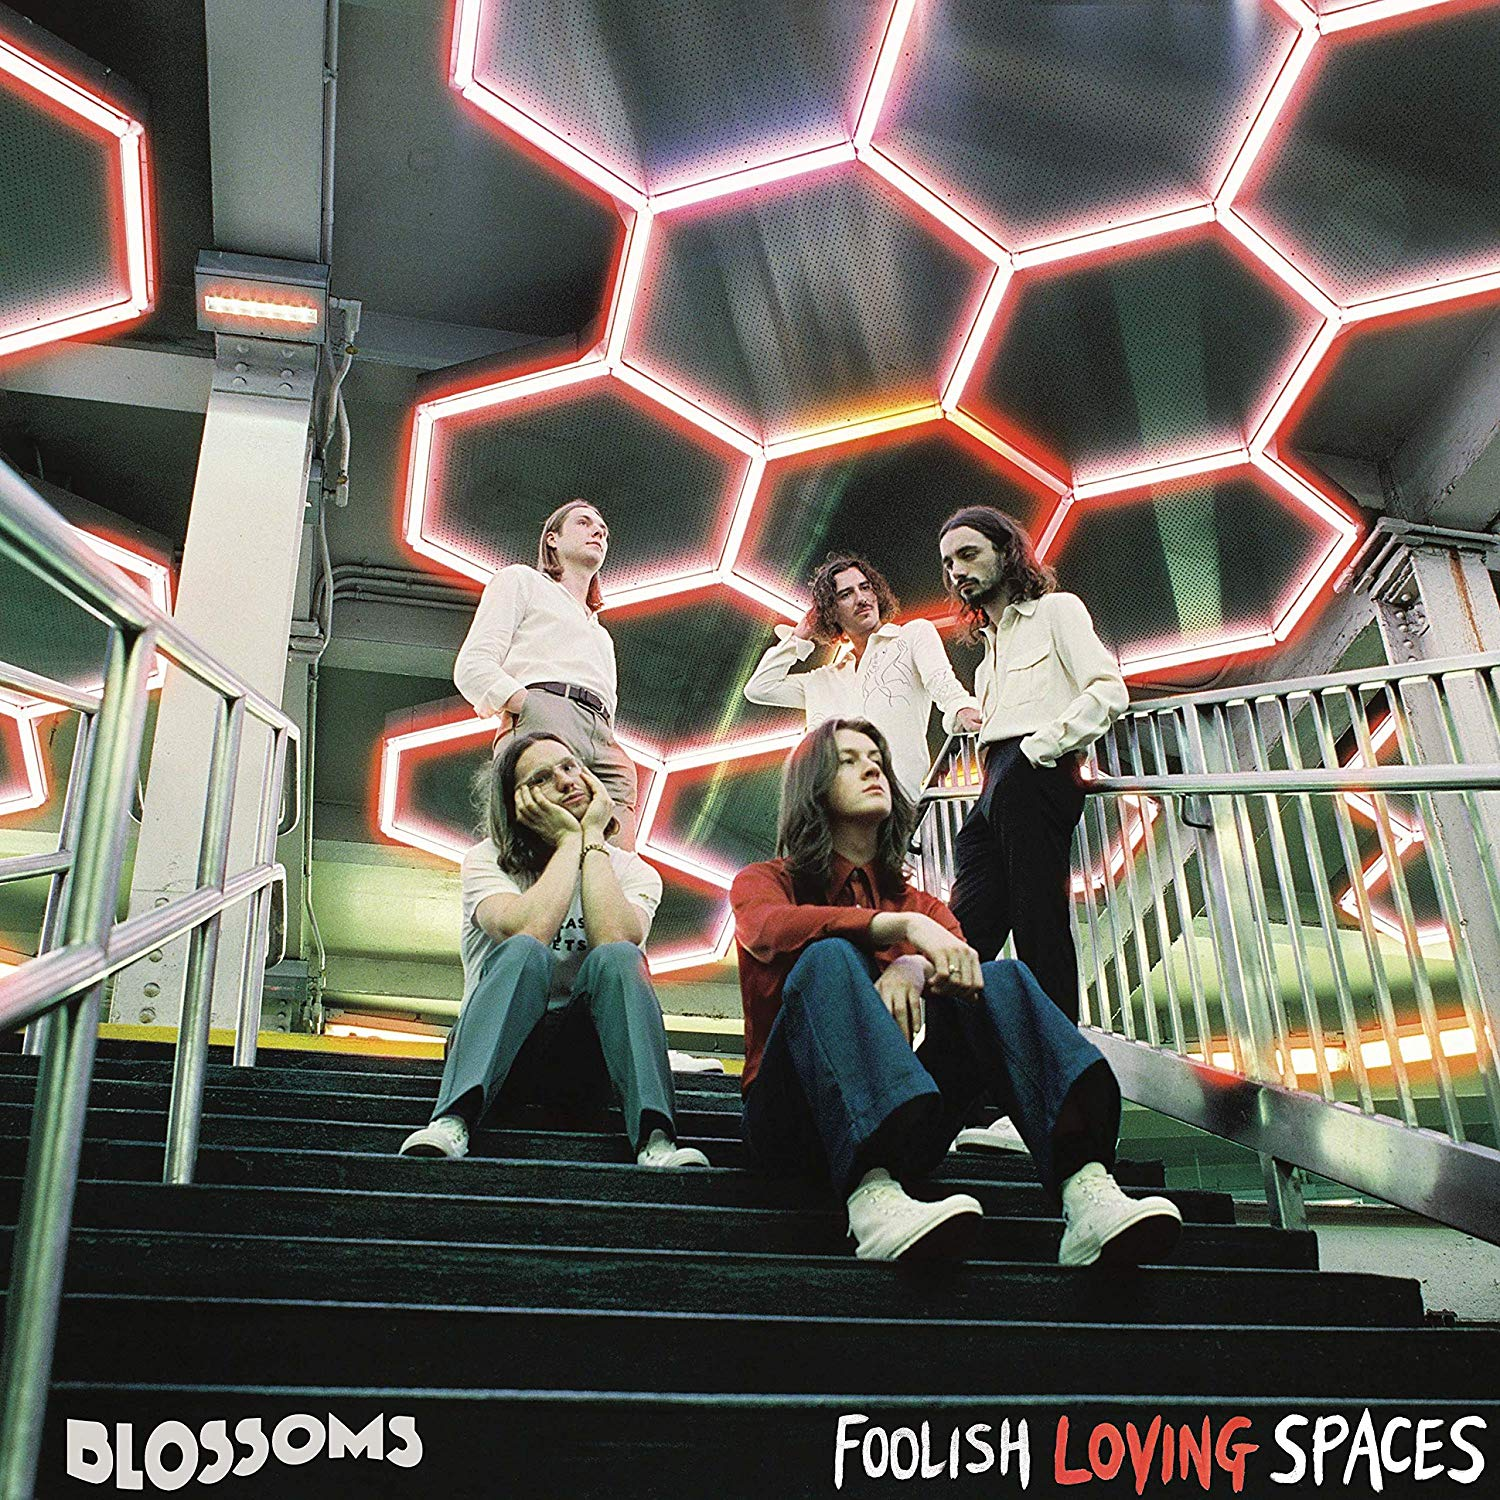 Blossoms – Foolish Loving Spaces(Virgin)